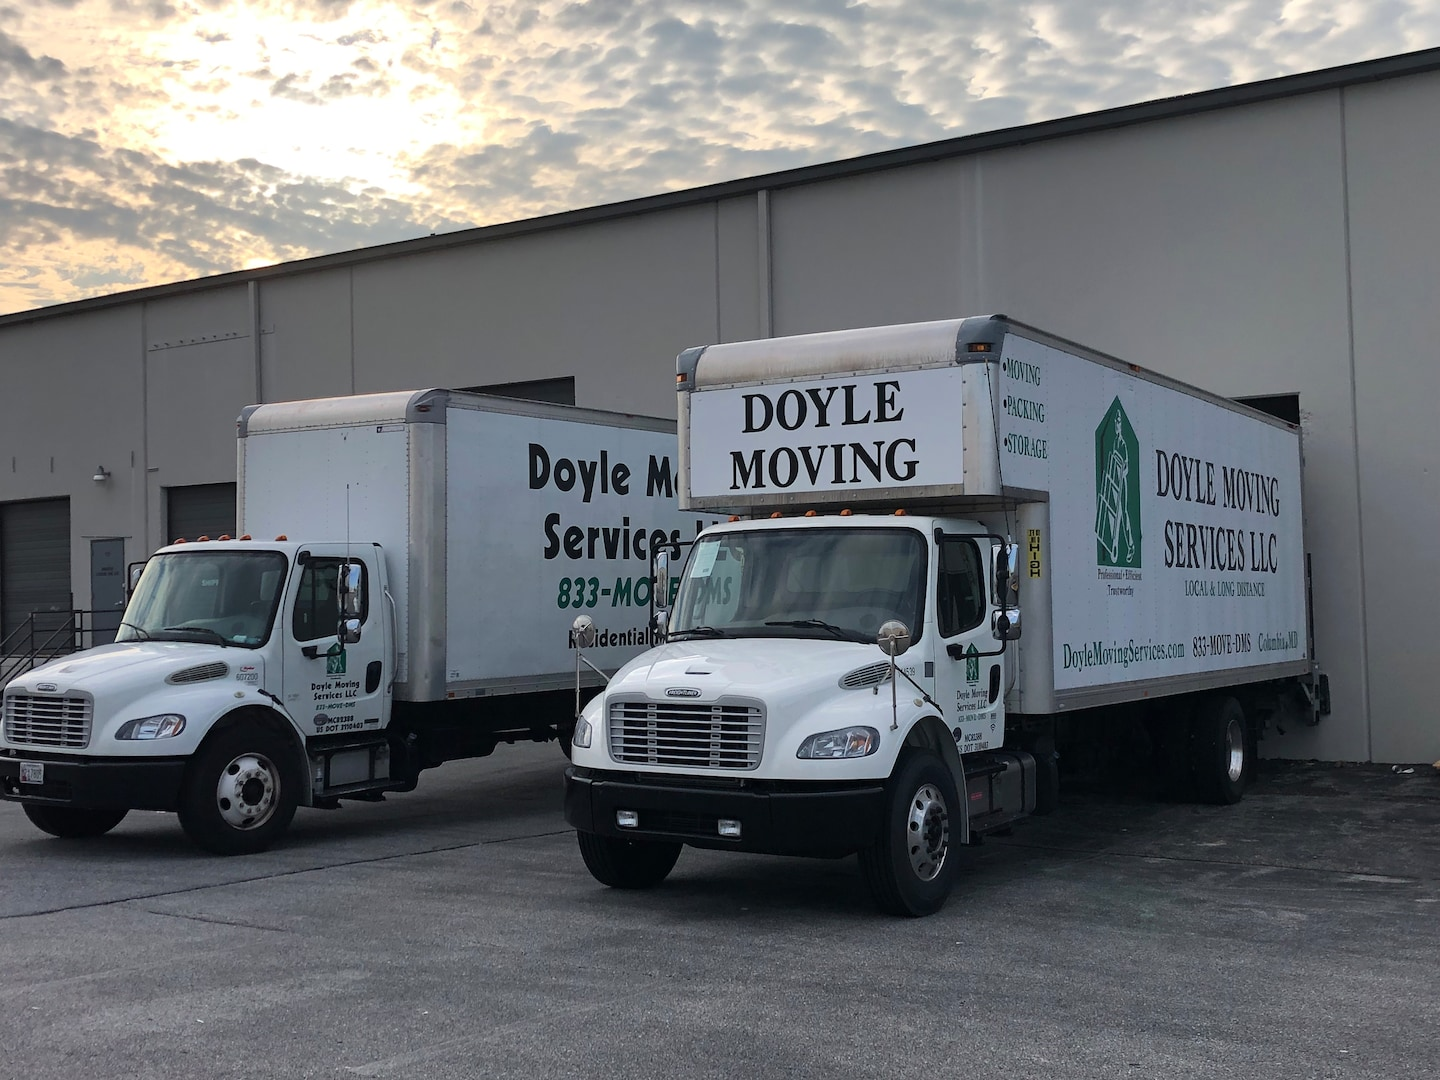 Doyle Moving Services LLC